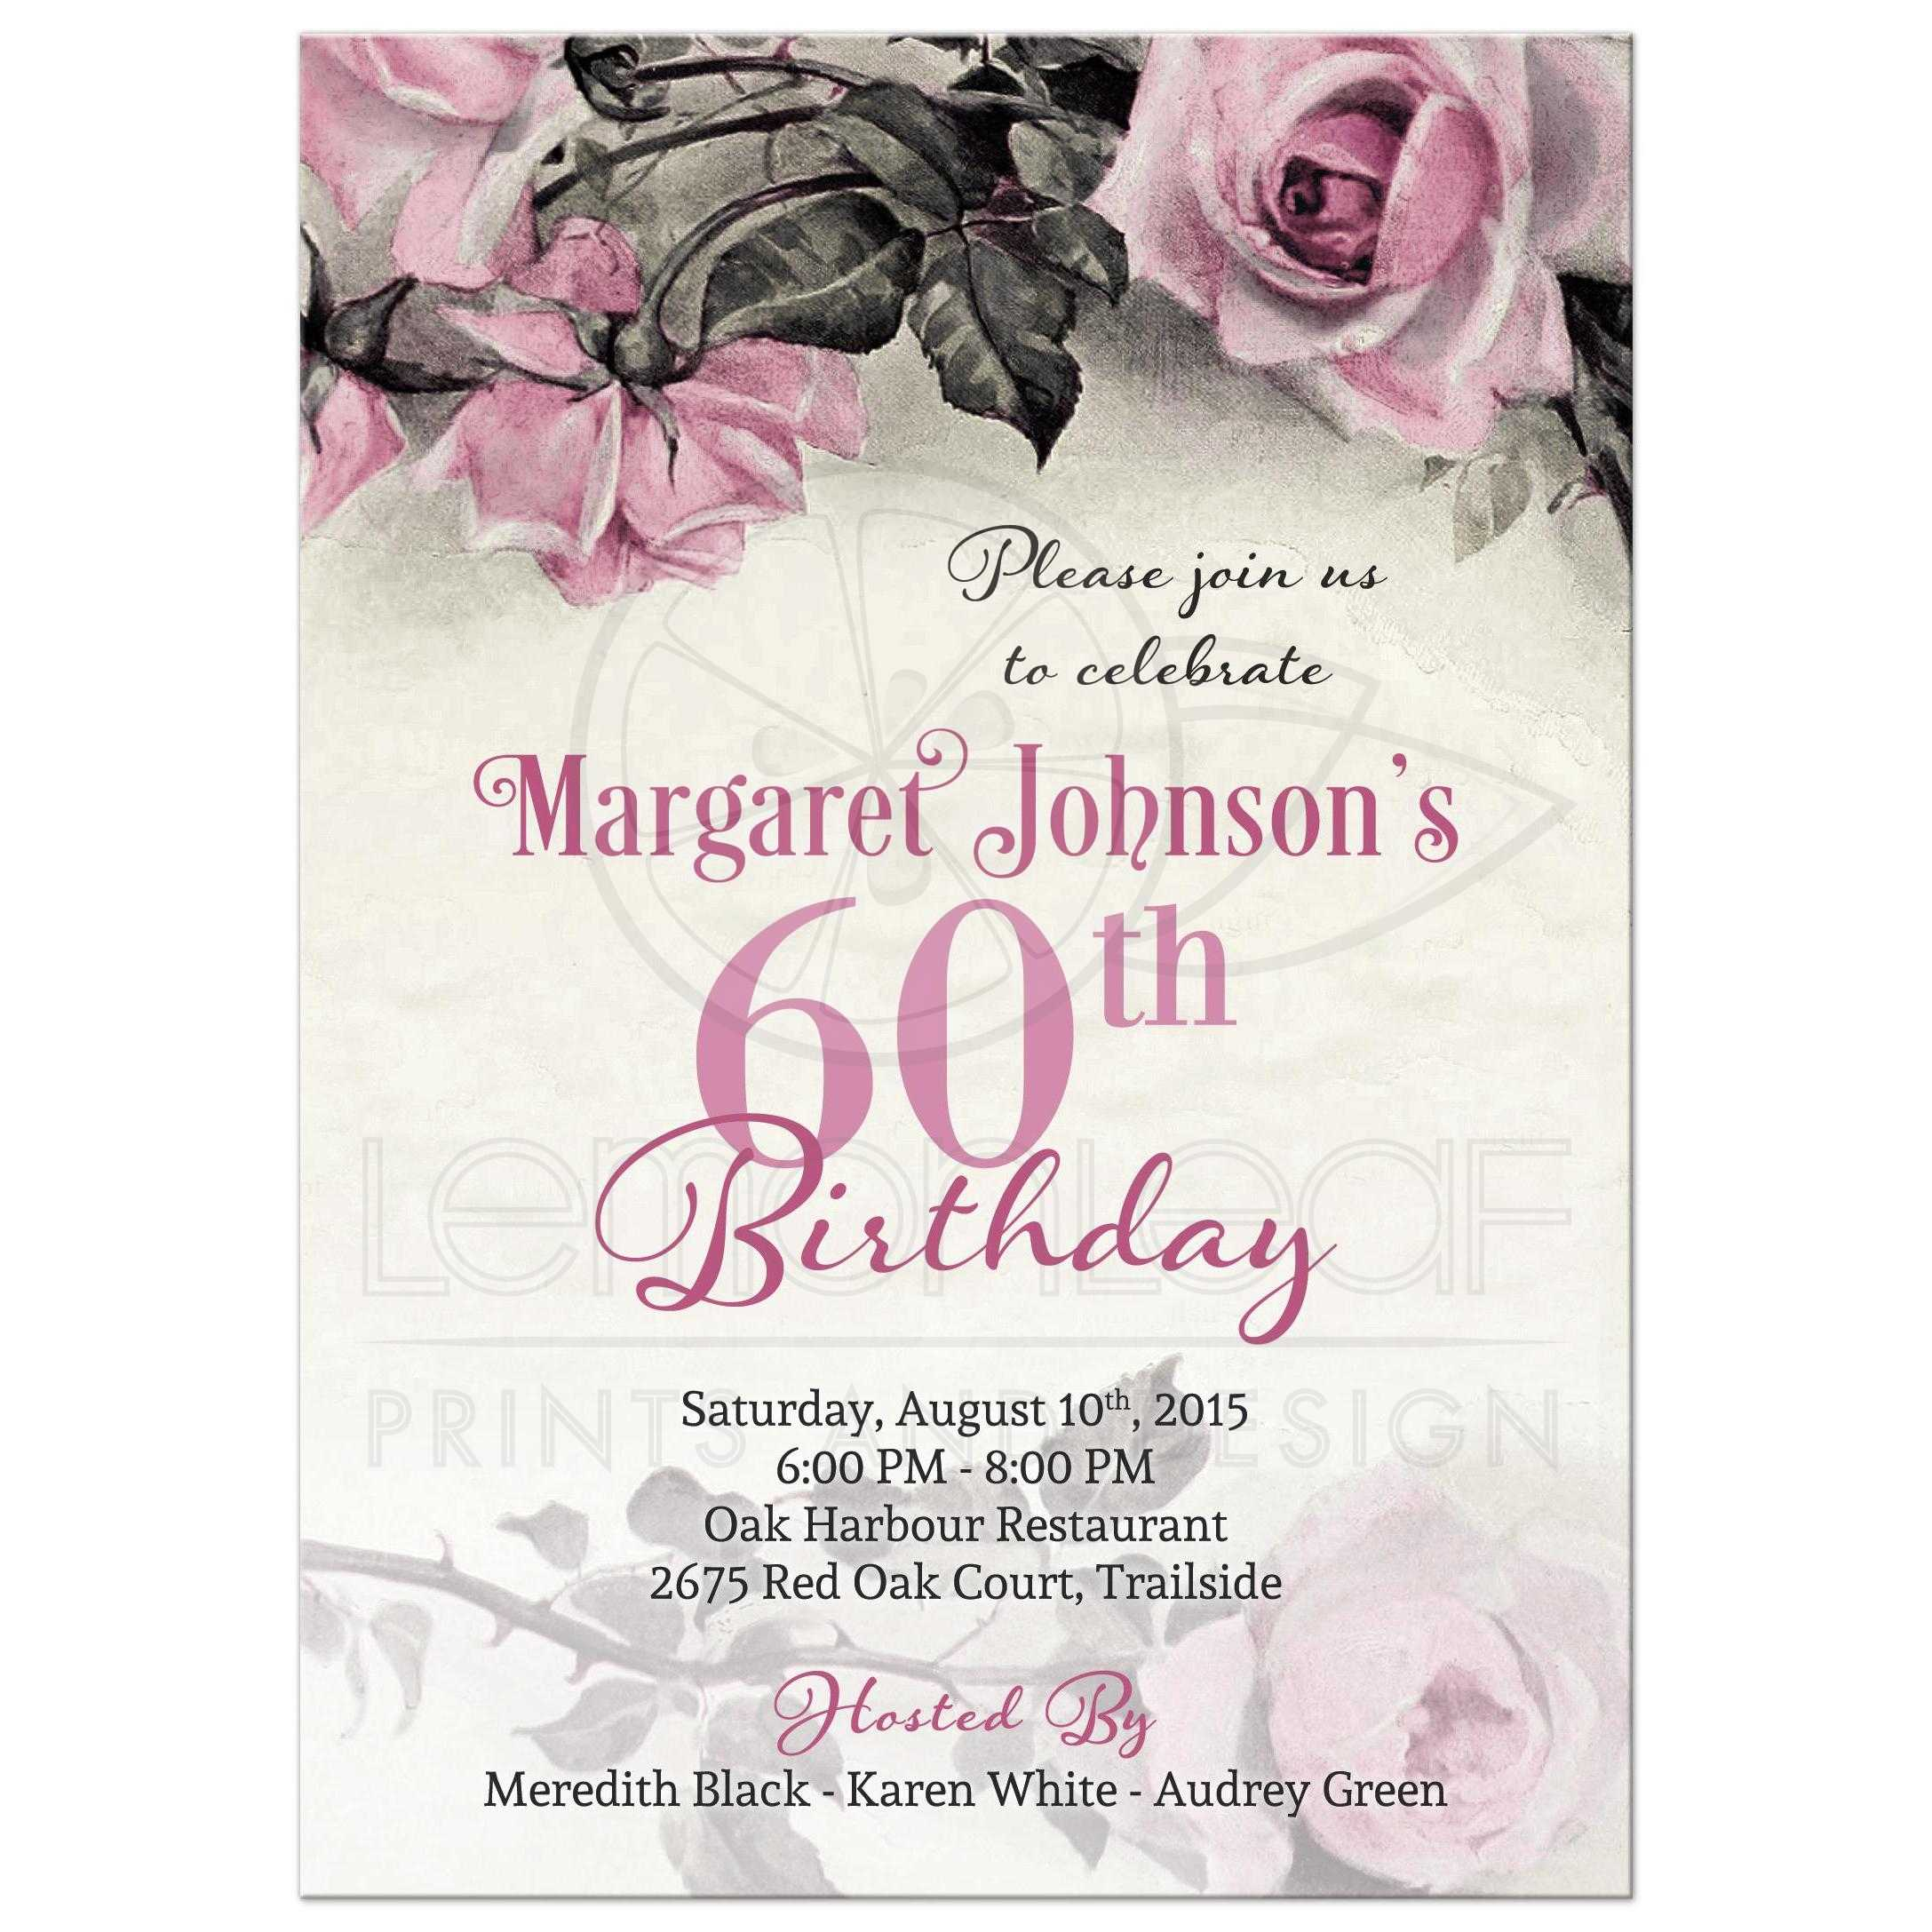 th Birthday Invitation